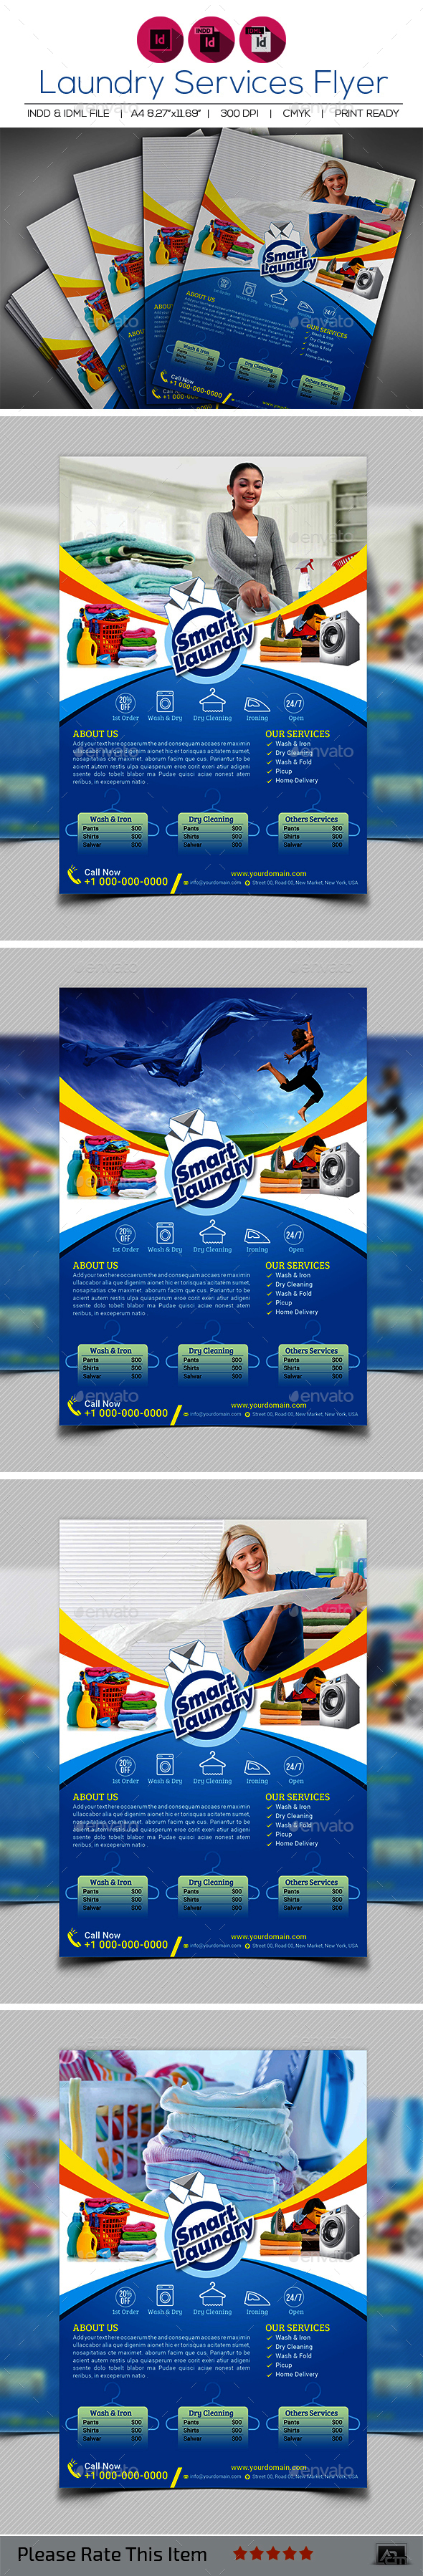 Laundry Service Flyer Template V3